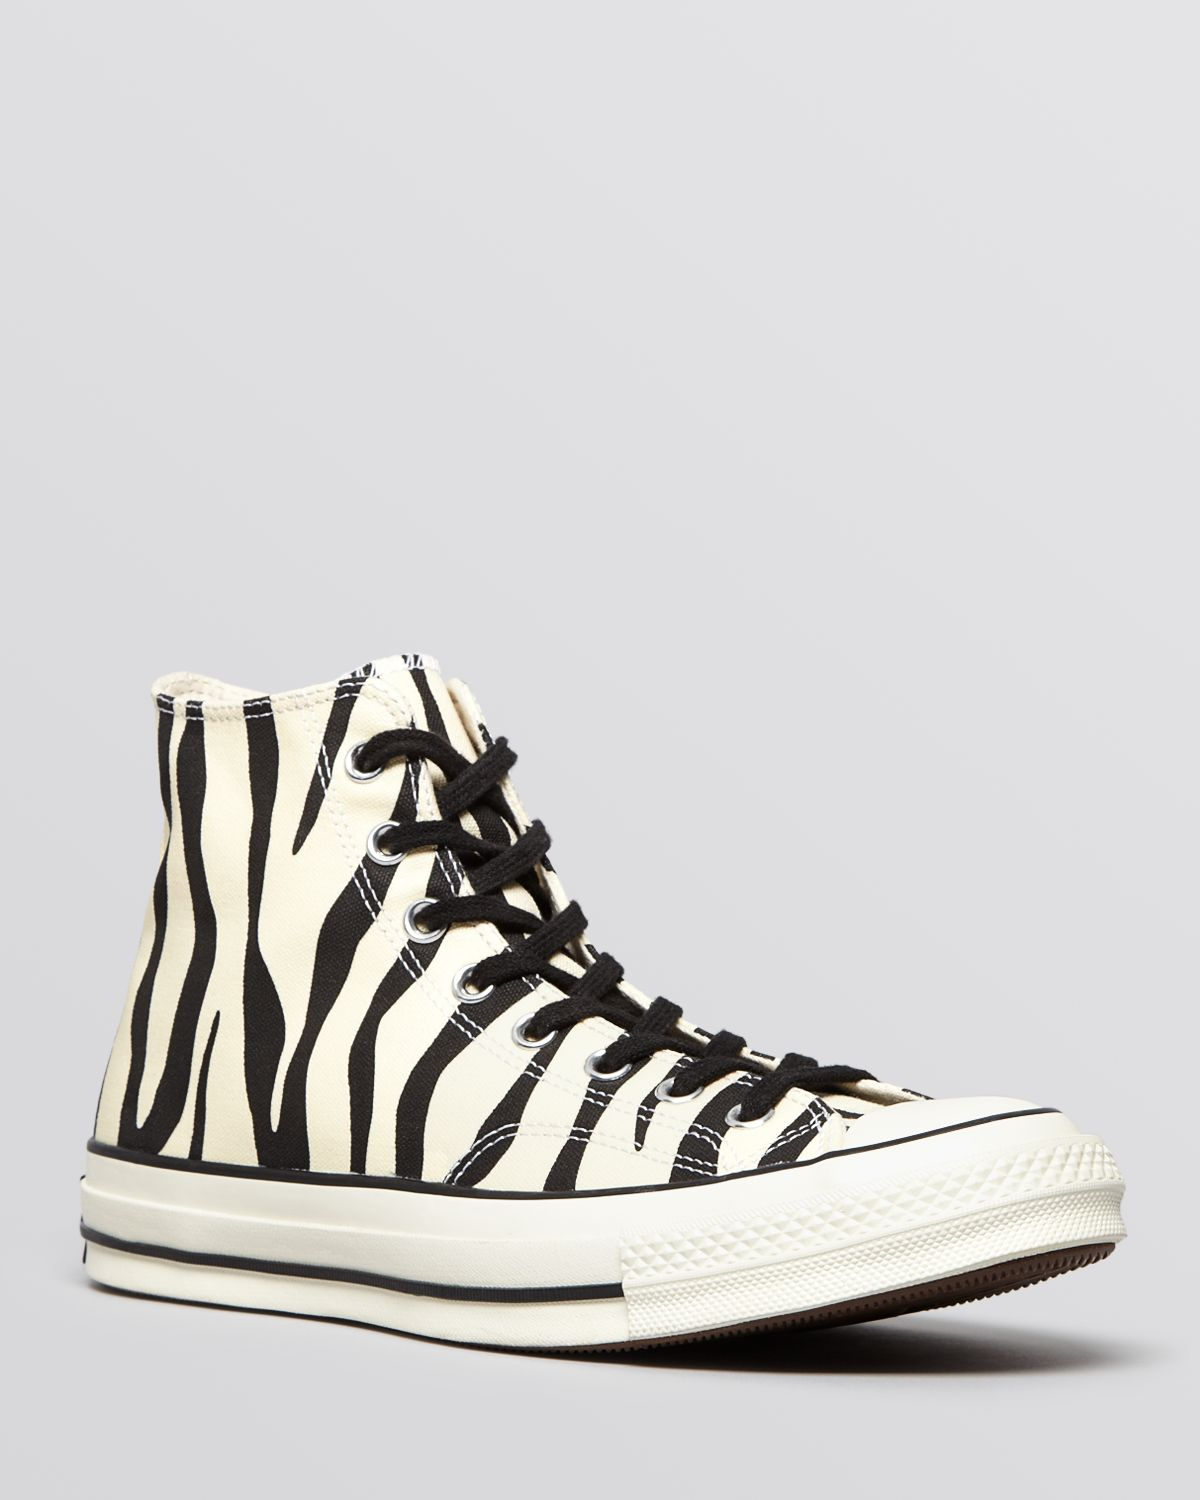 5140b87fc248 Lyst - Converse Chuck Taylor All Star 70 High Top Sneakers in ...